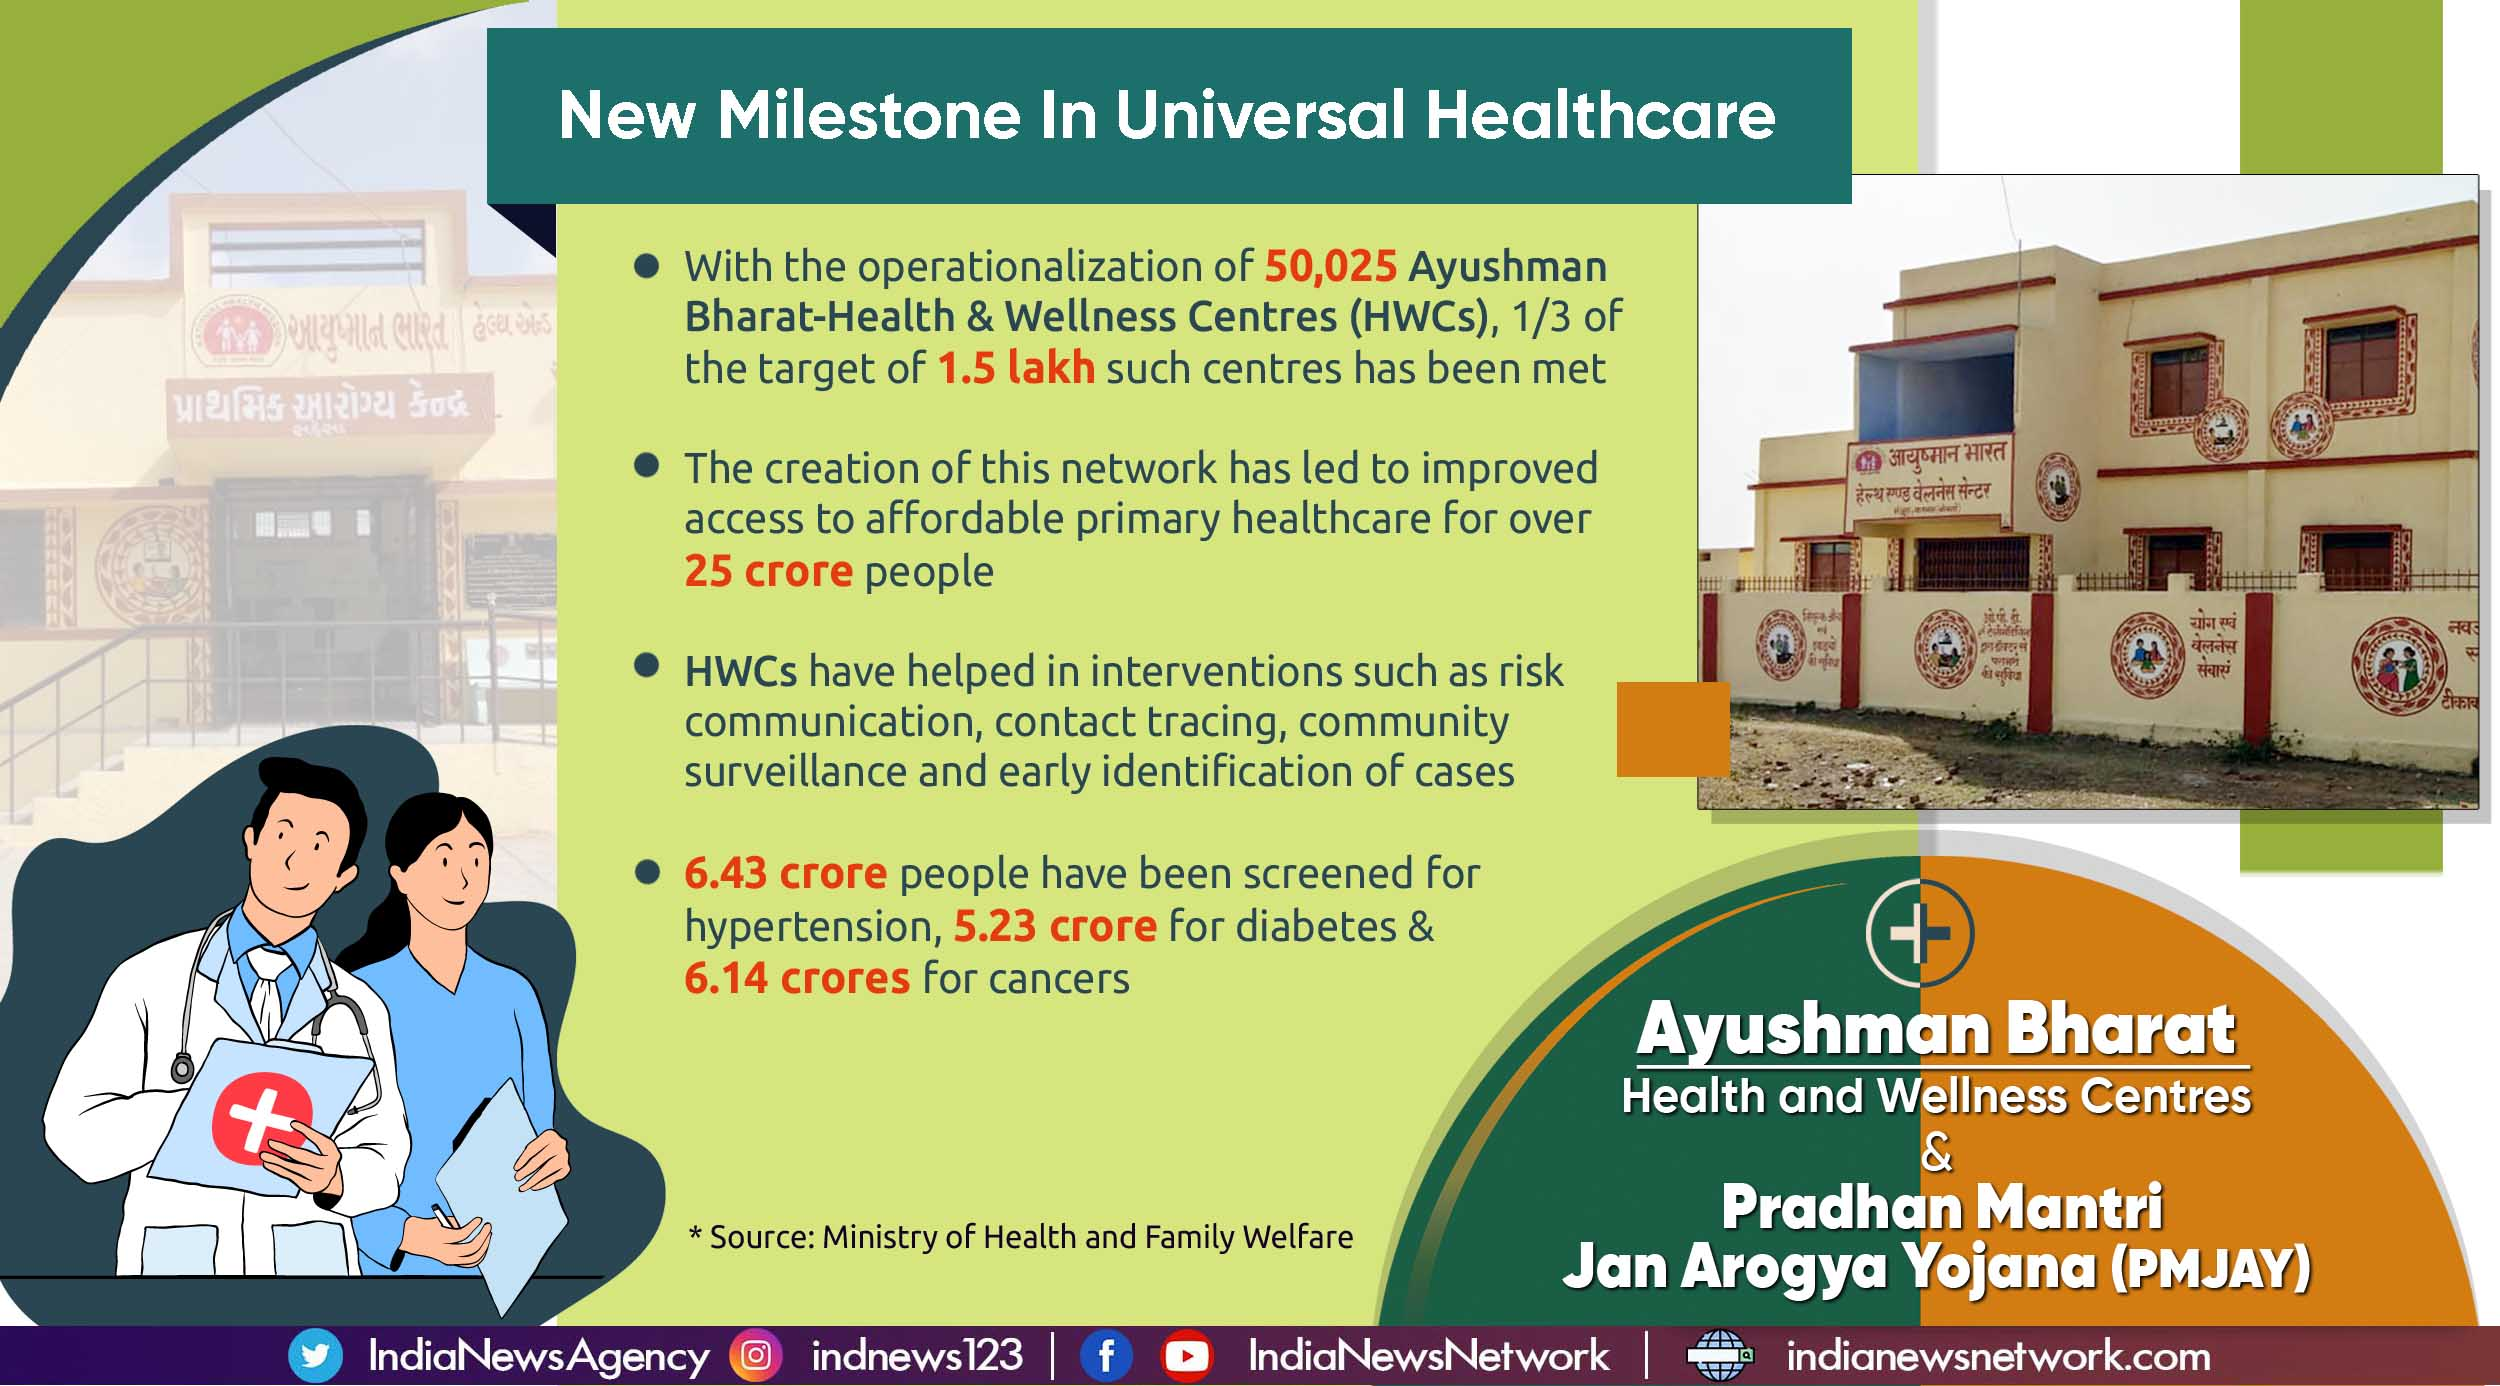 Health for All: Over 50,000 Ayushman Bharat Health and Wellness Centres operationalized